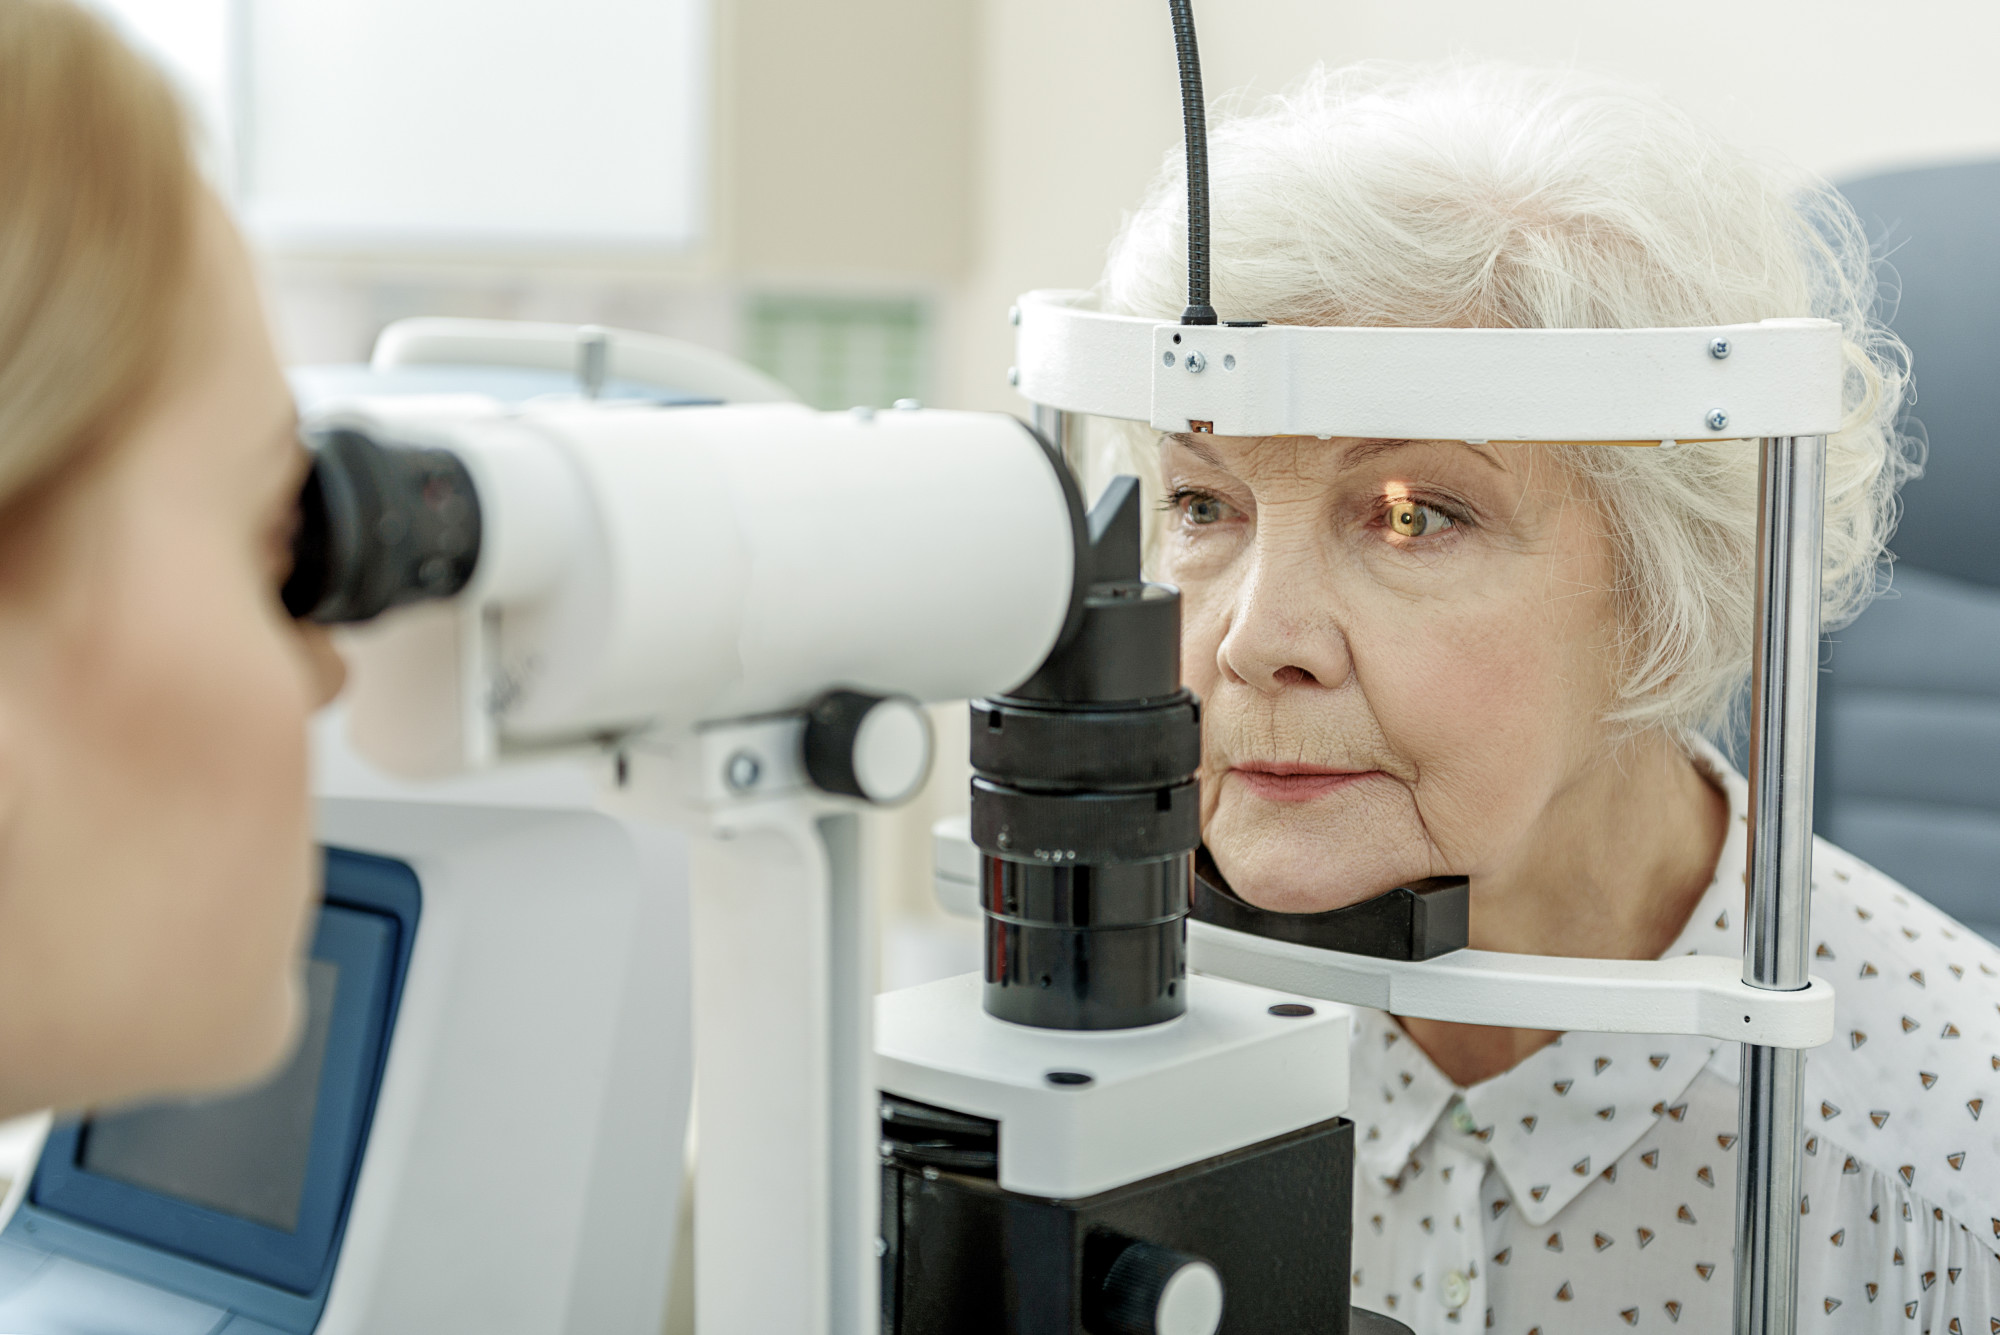 https://www.EgyLasik.com/wp-content/uploads/2020/03/eye-examination-for-old-person.jpeg